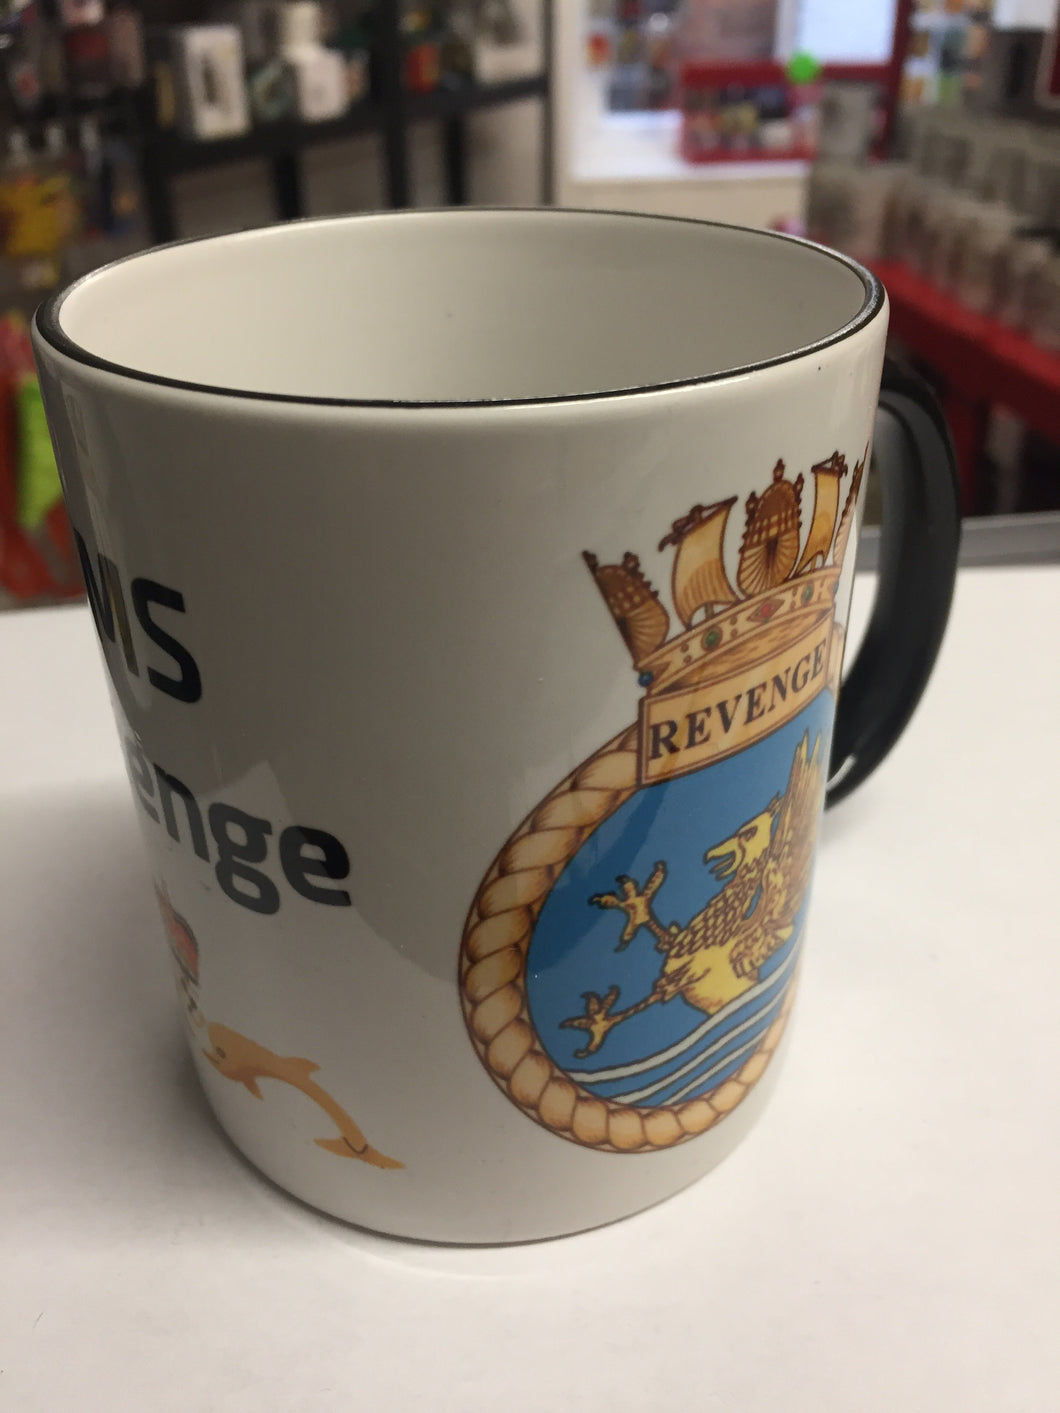 HMS Revenge Coffee/Travel Mugs